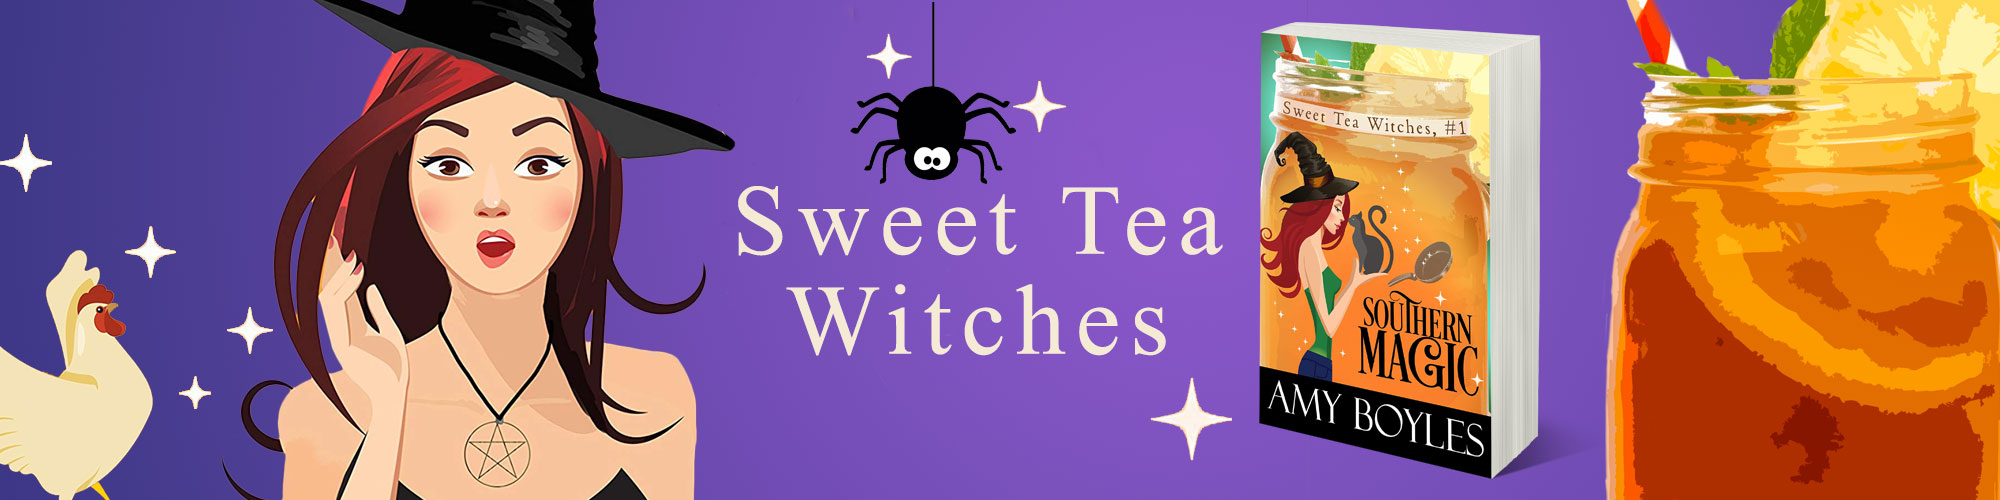 Sweet Tea Witches